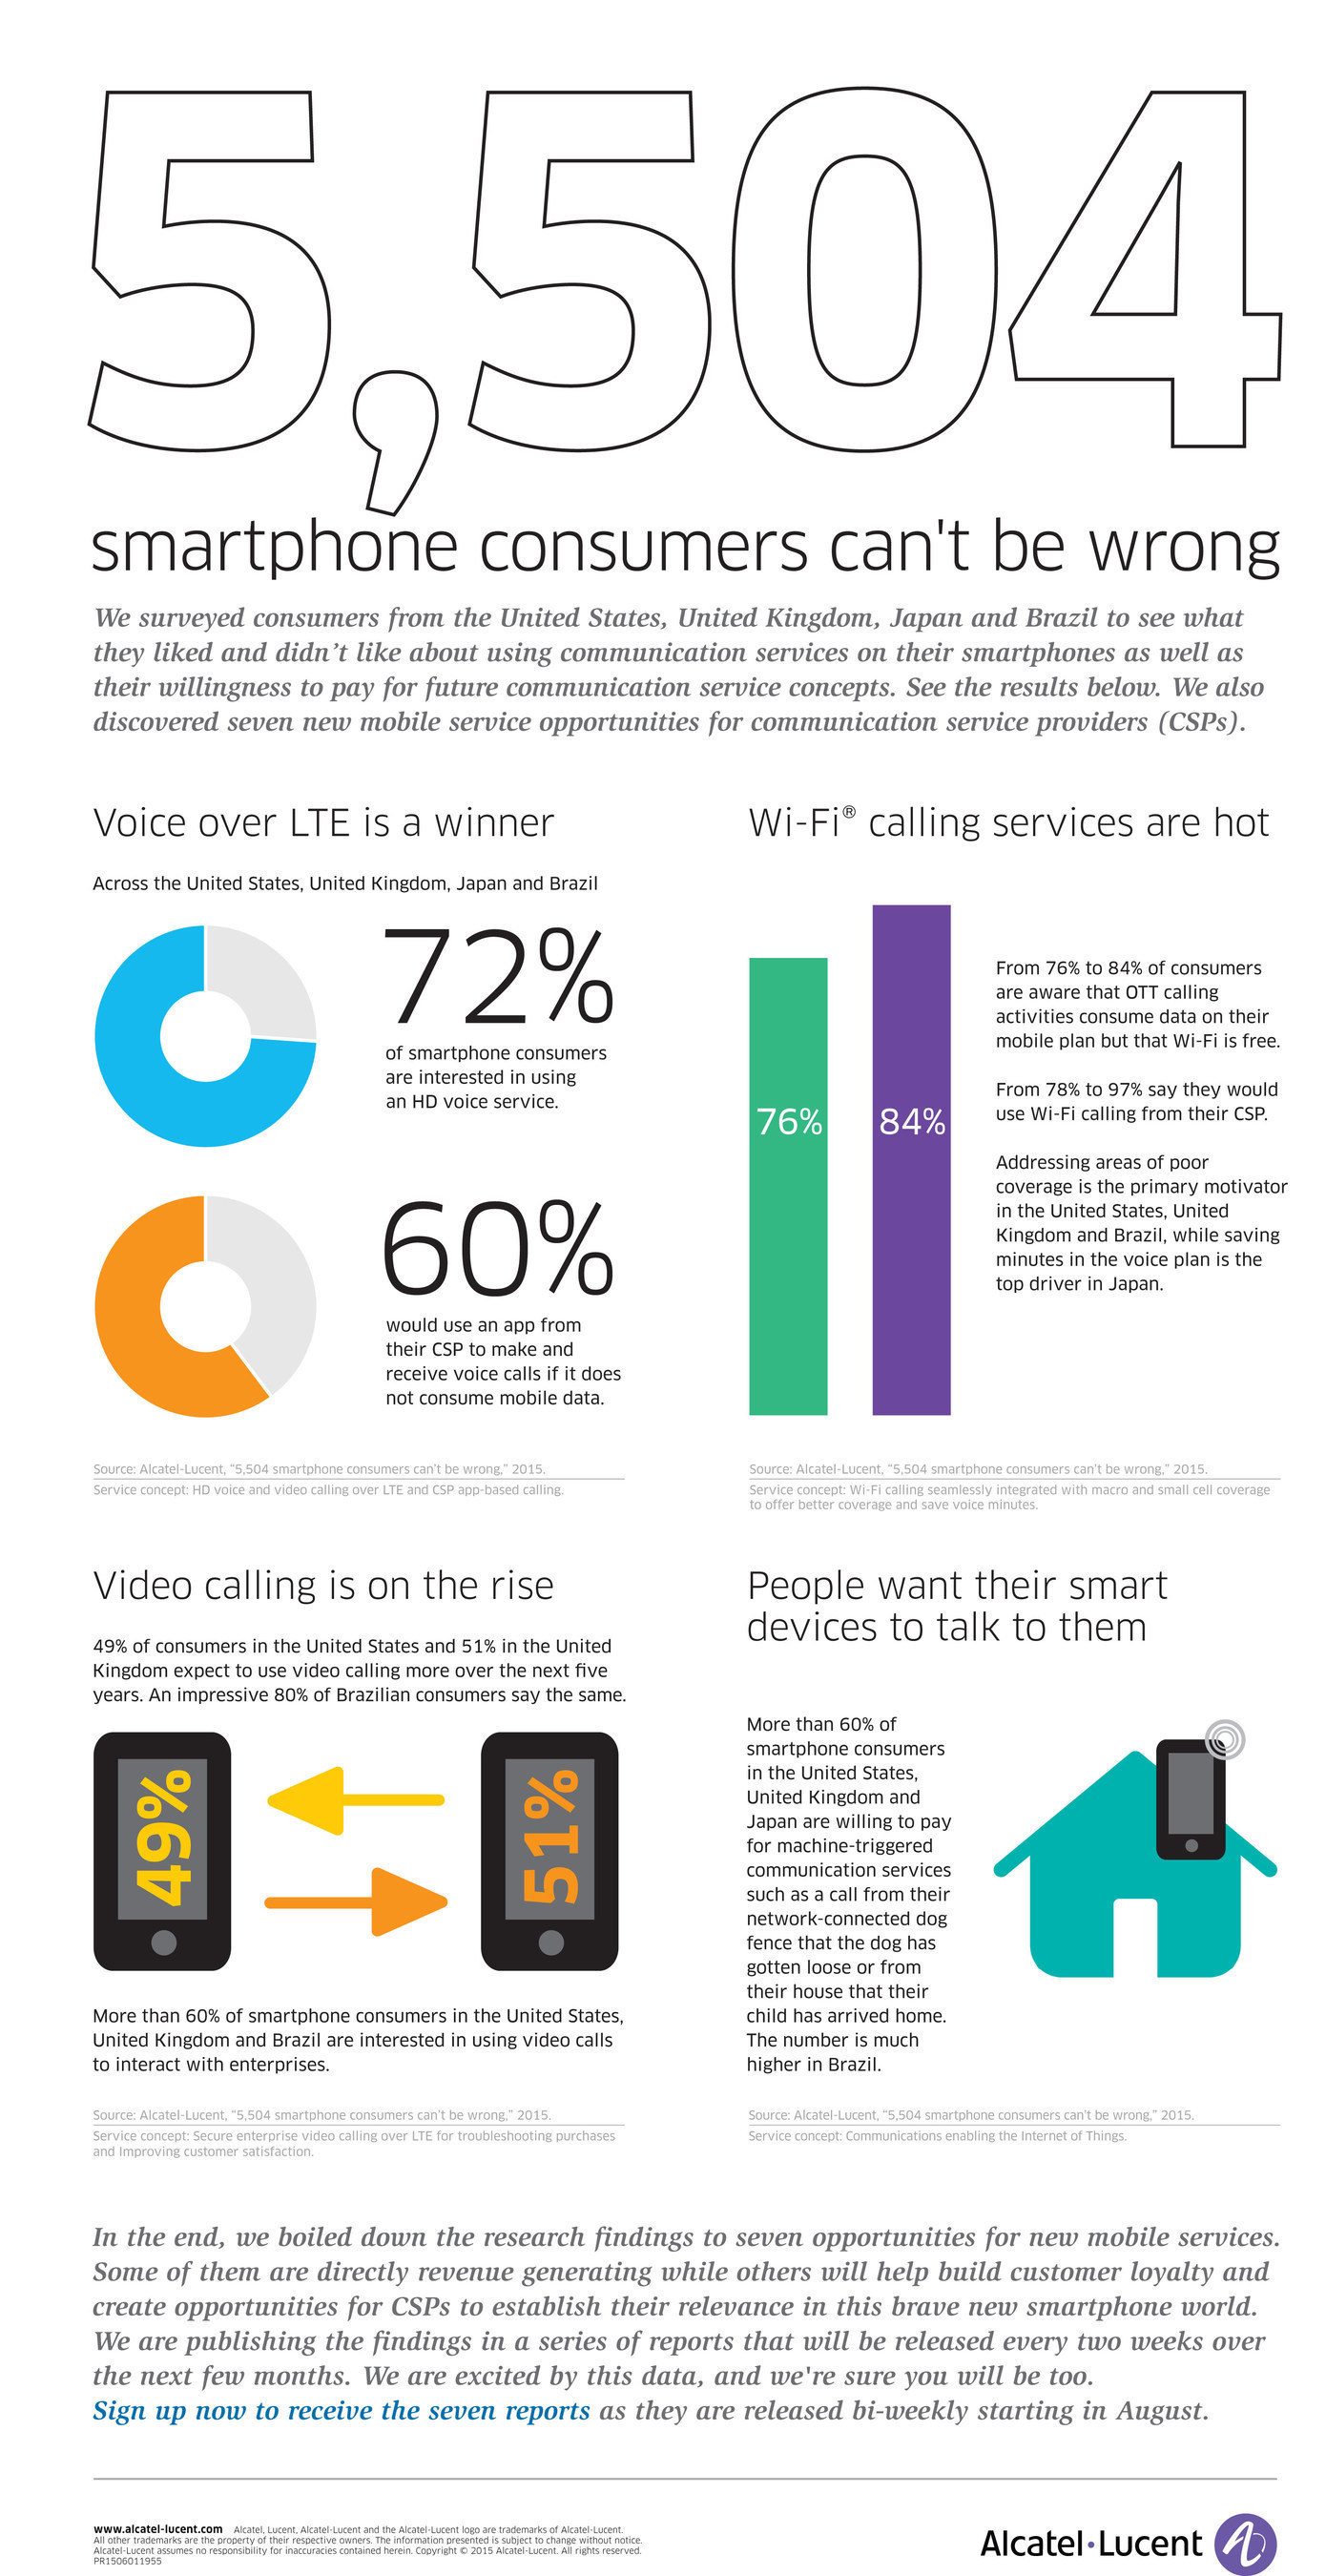 5,004 smartphone consumers can't be wrong - Alcatel-Lucent research uncovers new opportunities for future ...